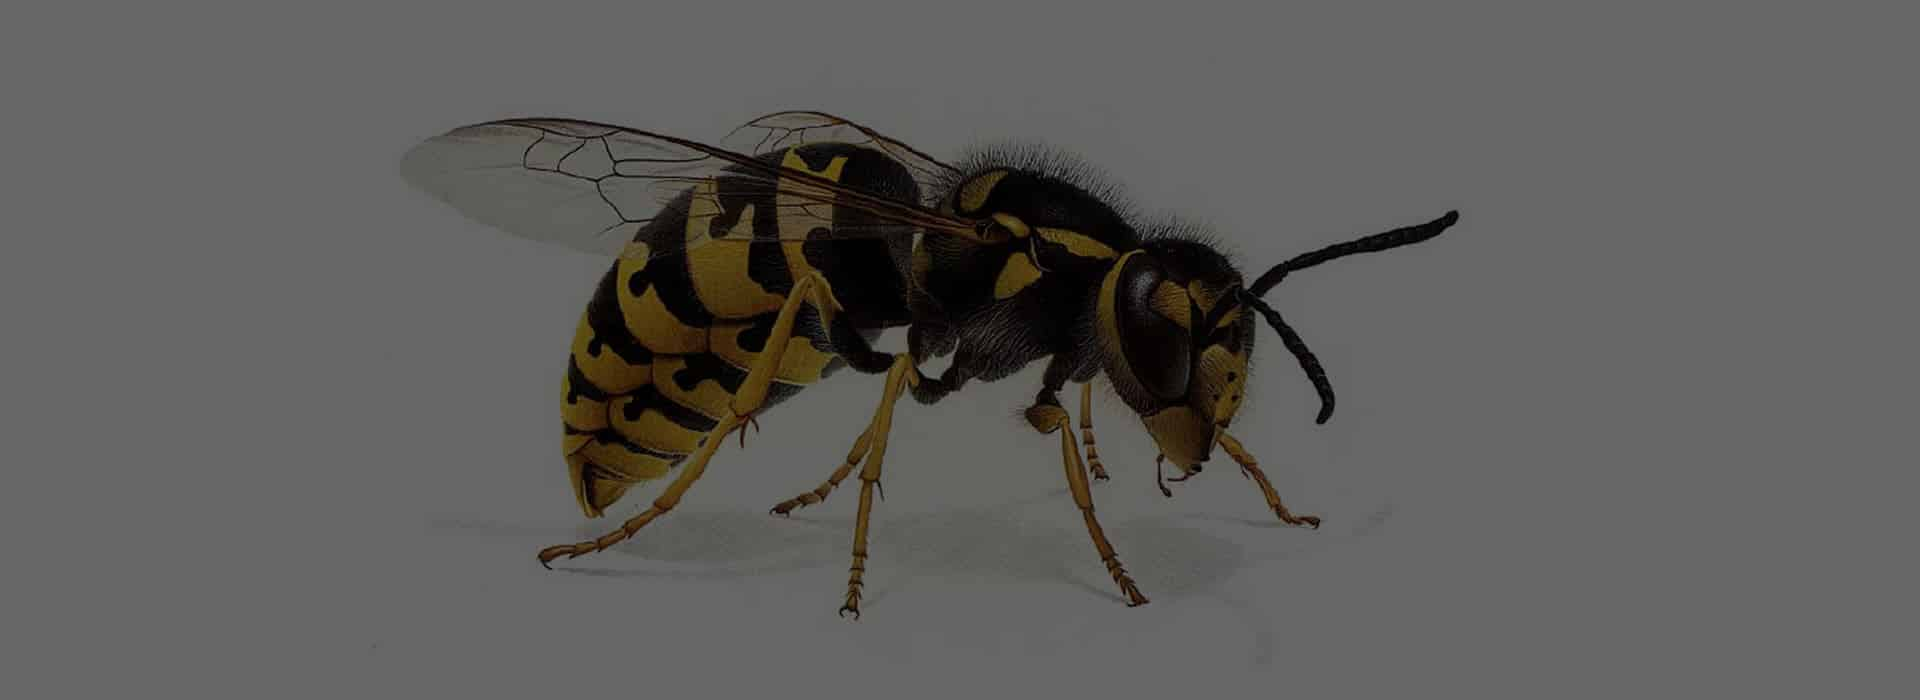 Pest-Control-Salford-Wasp-Nest-Removal-3